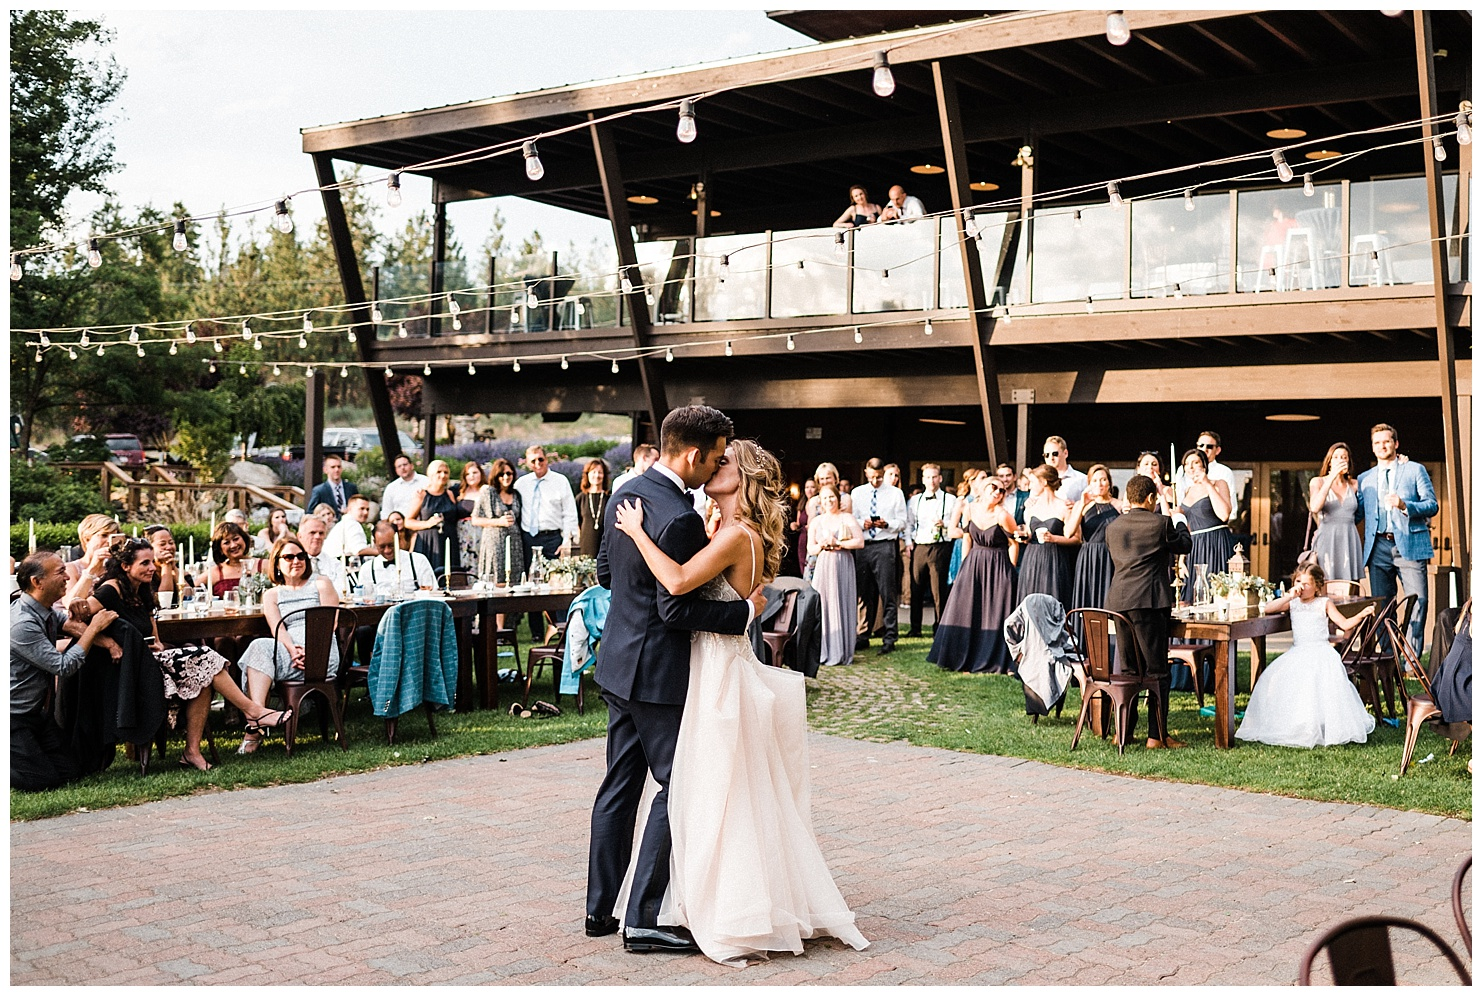 Anna & Tony during their first dance at their Beacon Hill wedding in Spokane WA taken by Forthright Photo